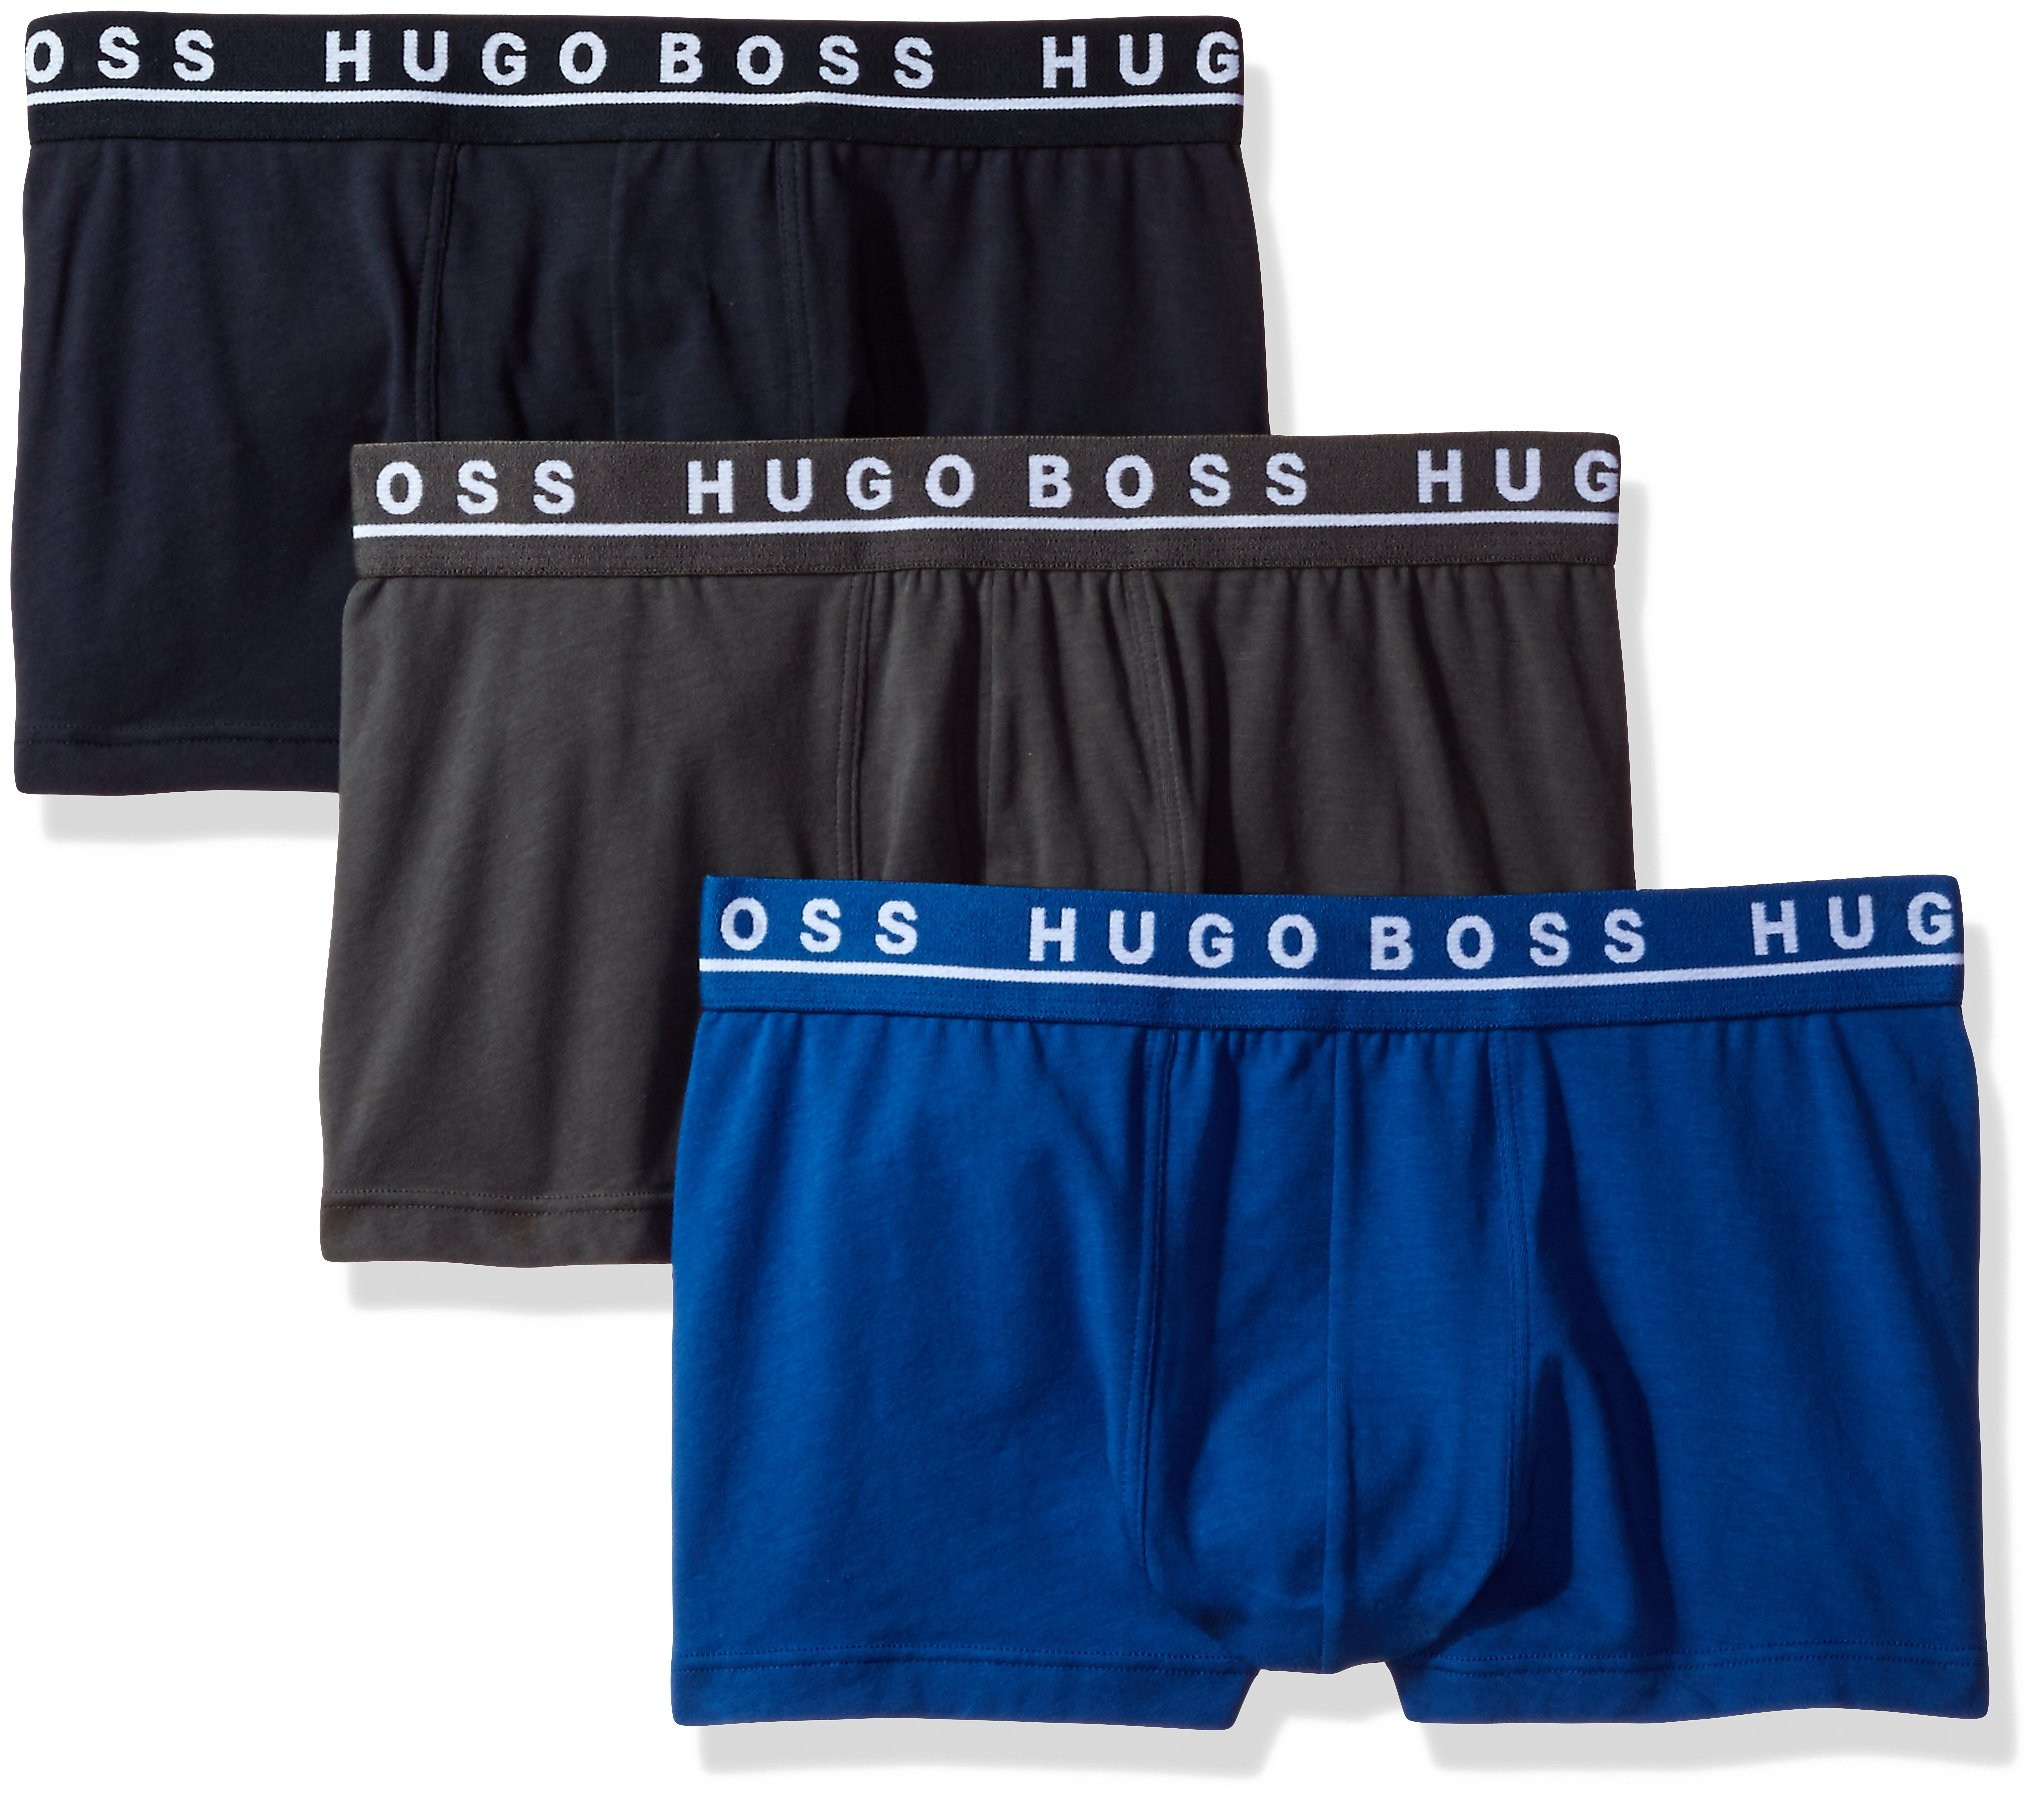 Hugo Boss BOSS Men's Trunk 3p Co/El 10146061 01, True Blue/Sky Captain/Forged Iron, Small